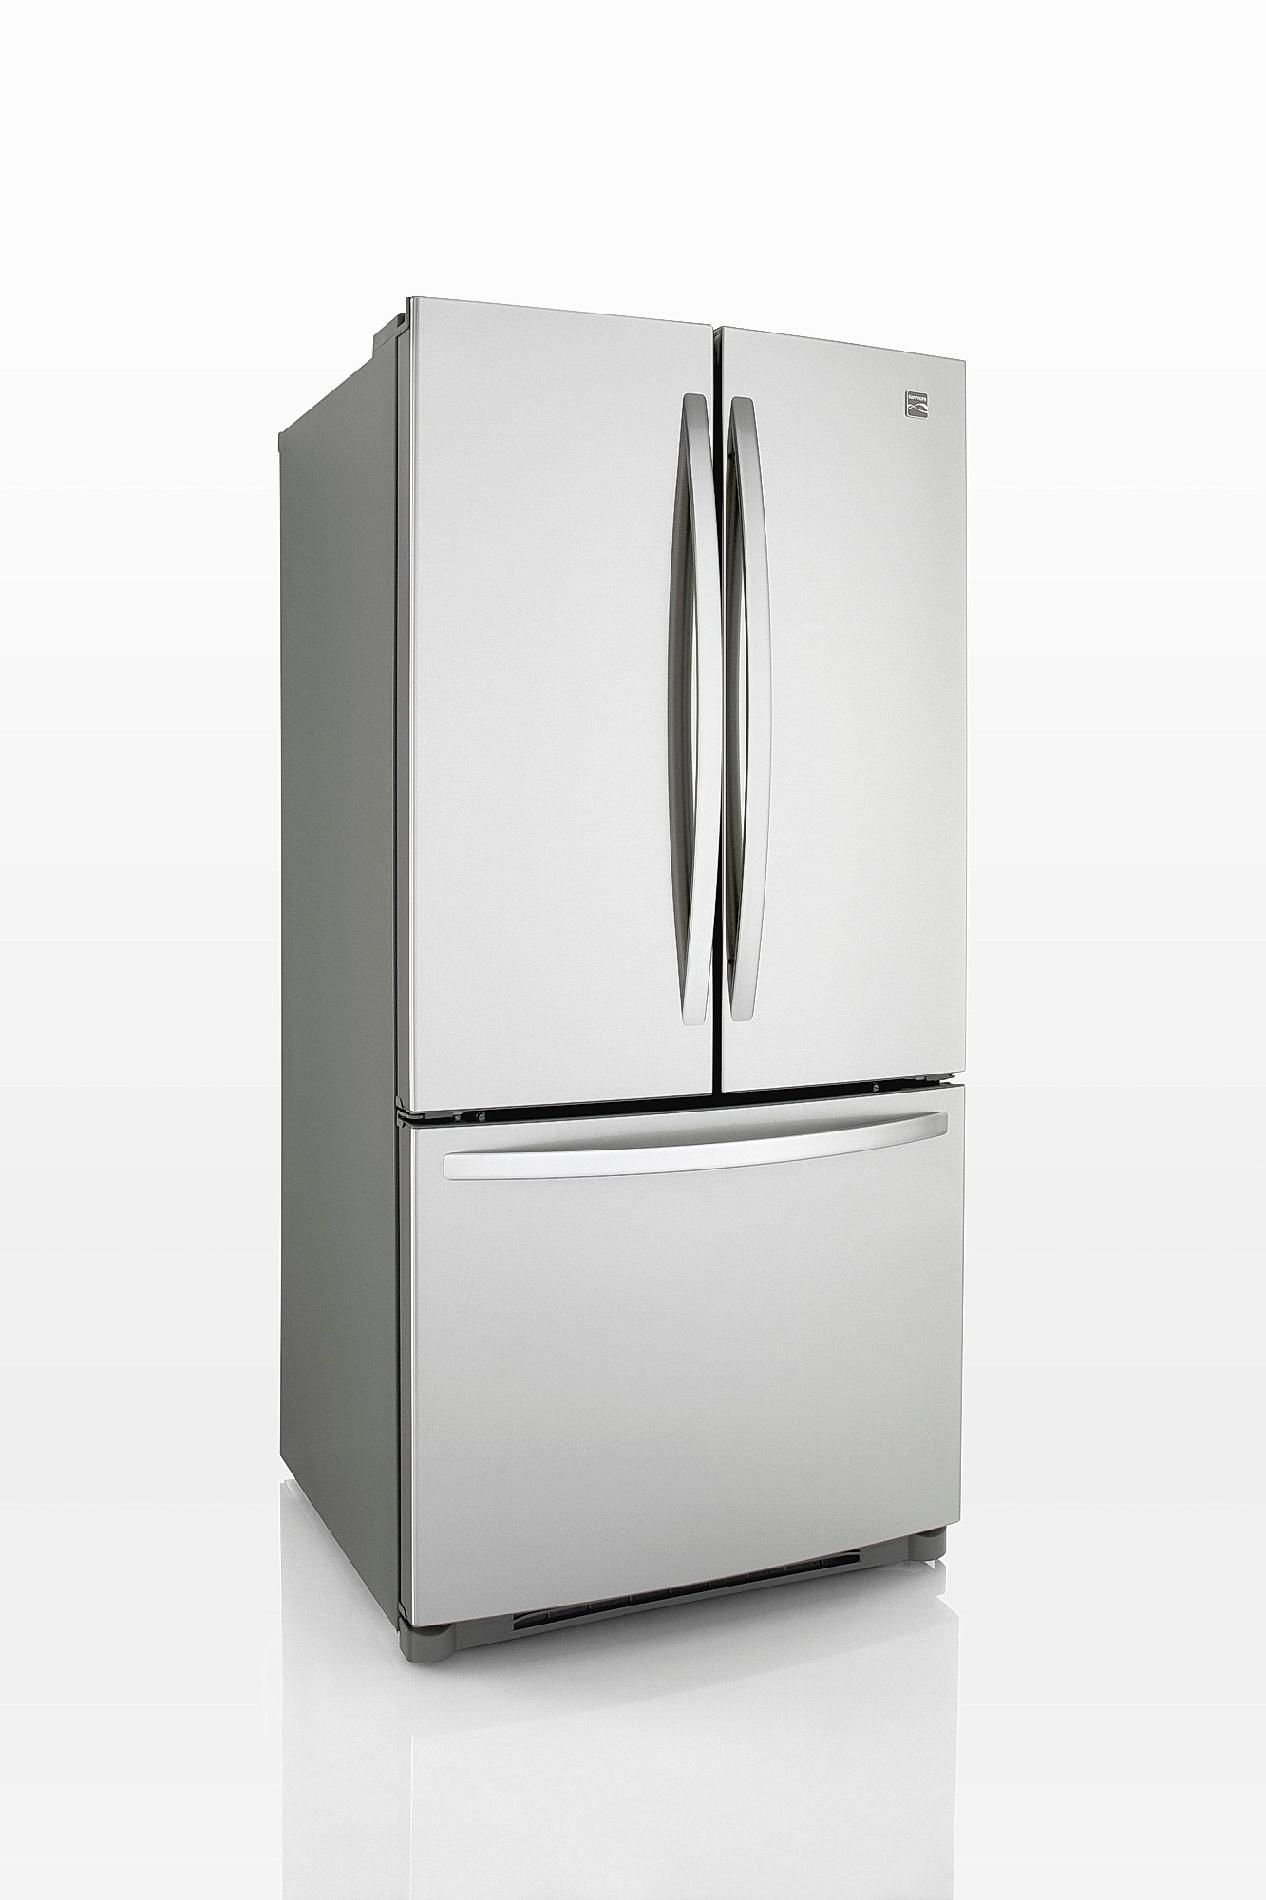 Kenmore 22.7 cu. ft. French Door Bottom Freezer Refrigerator